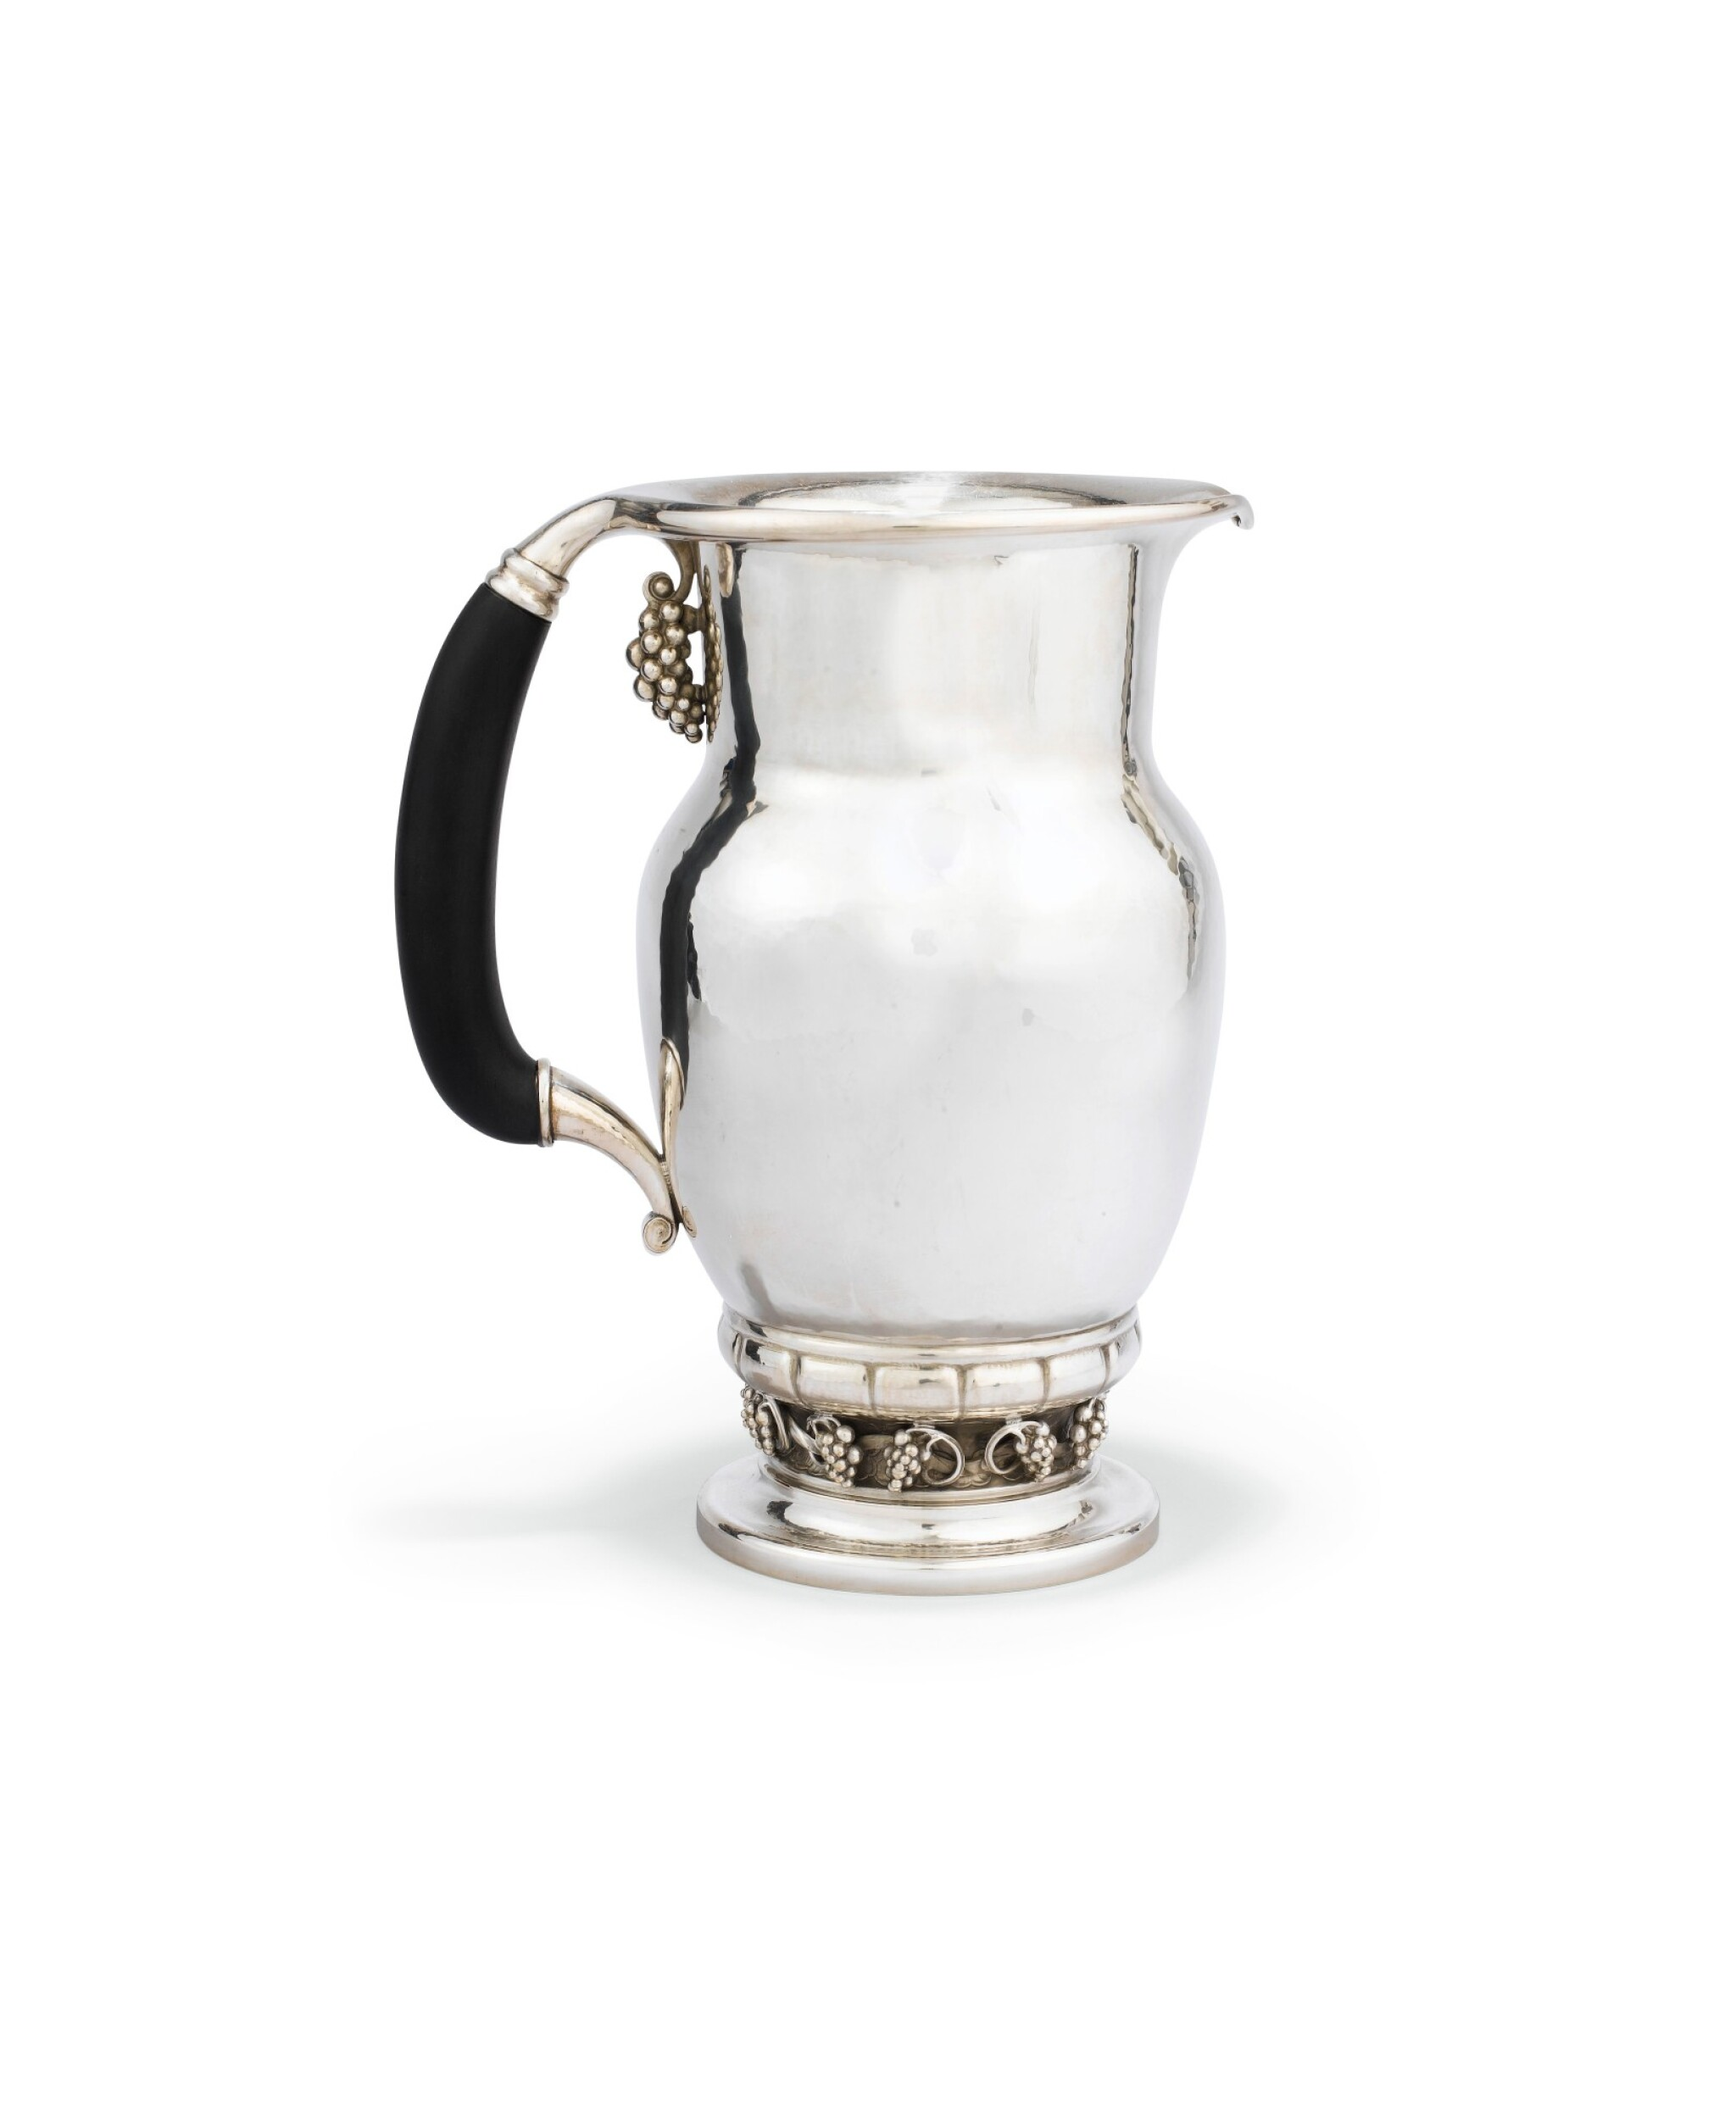 View 1 of Lot 40. A DANISH SILVER WATER-JUG, JENSEN, COPENHAGEN, AFTER 1945 | POT À EAU EN ARGENT PAR JENSEN, COPENHAGUE, APRÈS 1945 .